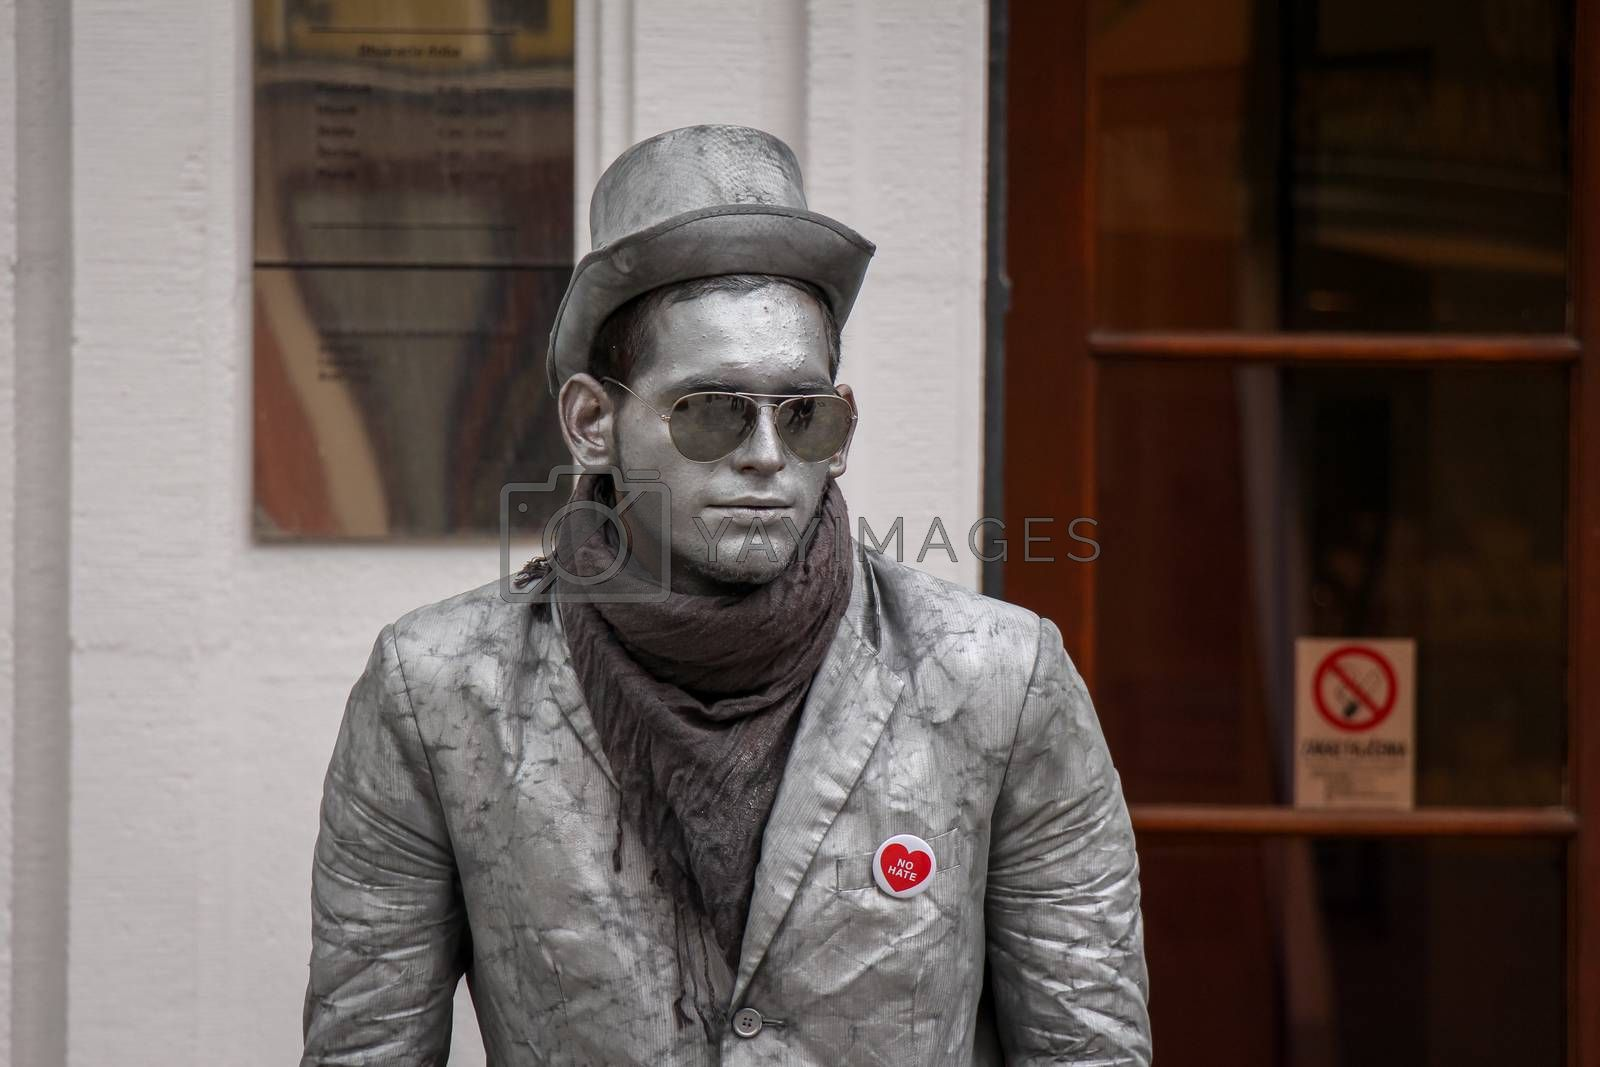 Bratislava, Slovakia - July 5th 2020: A street performer mimicking the silver statues in the old town in Bratislava, Slovakia